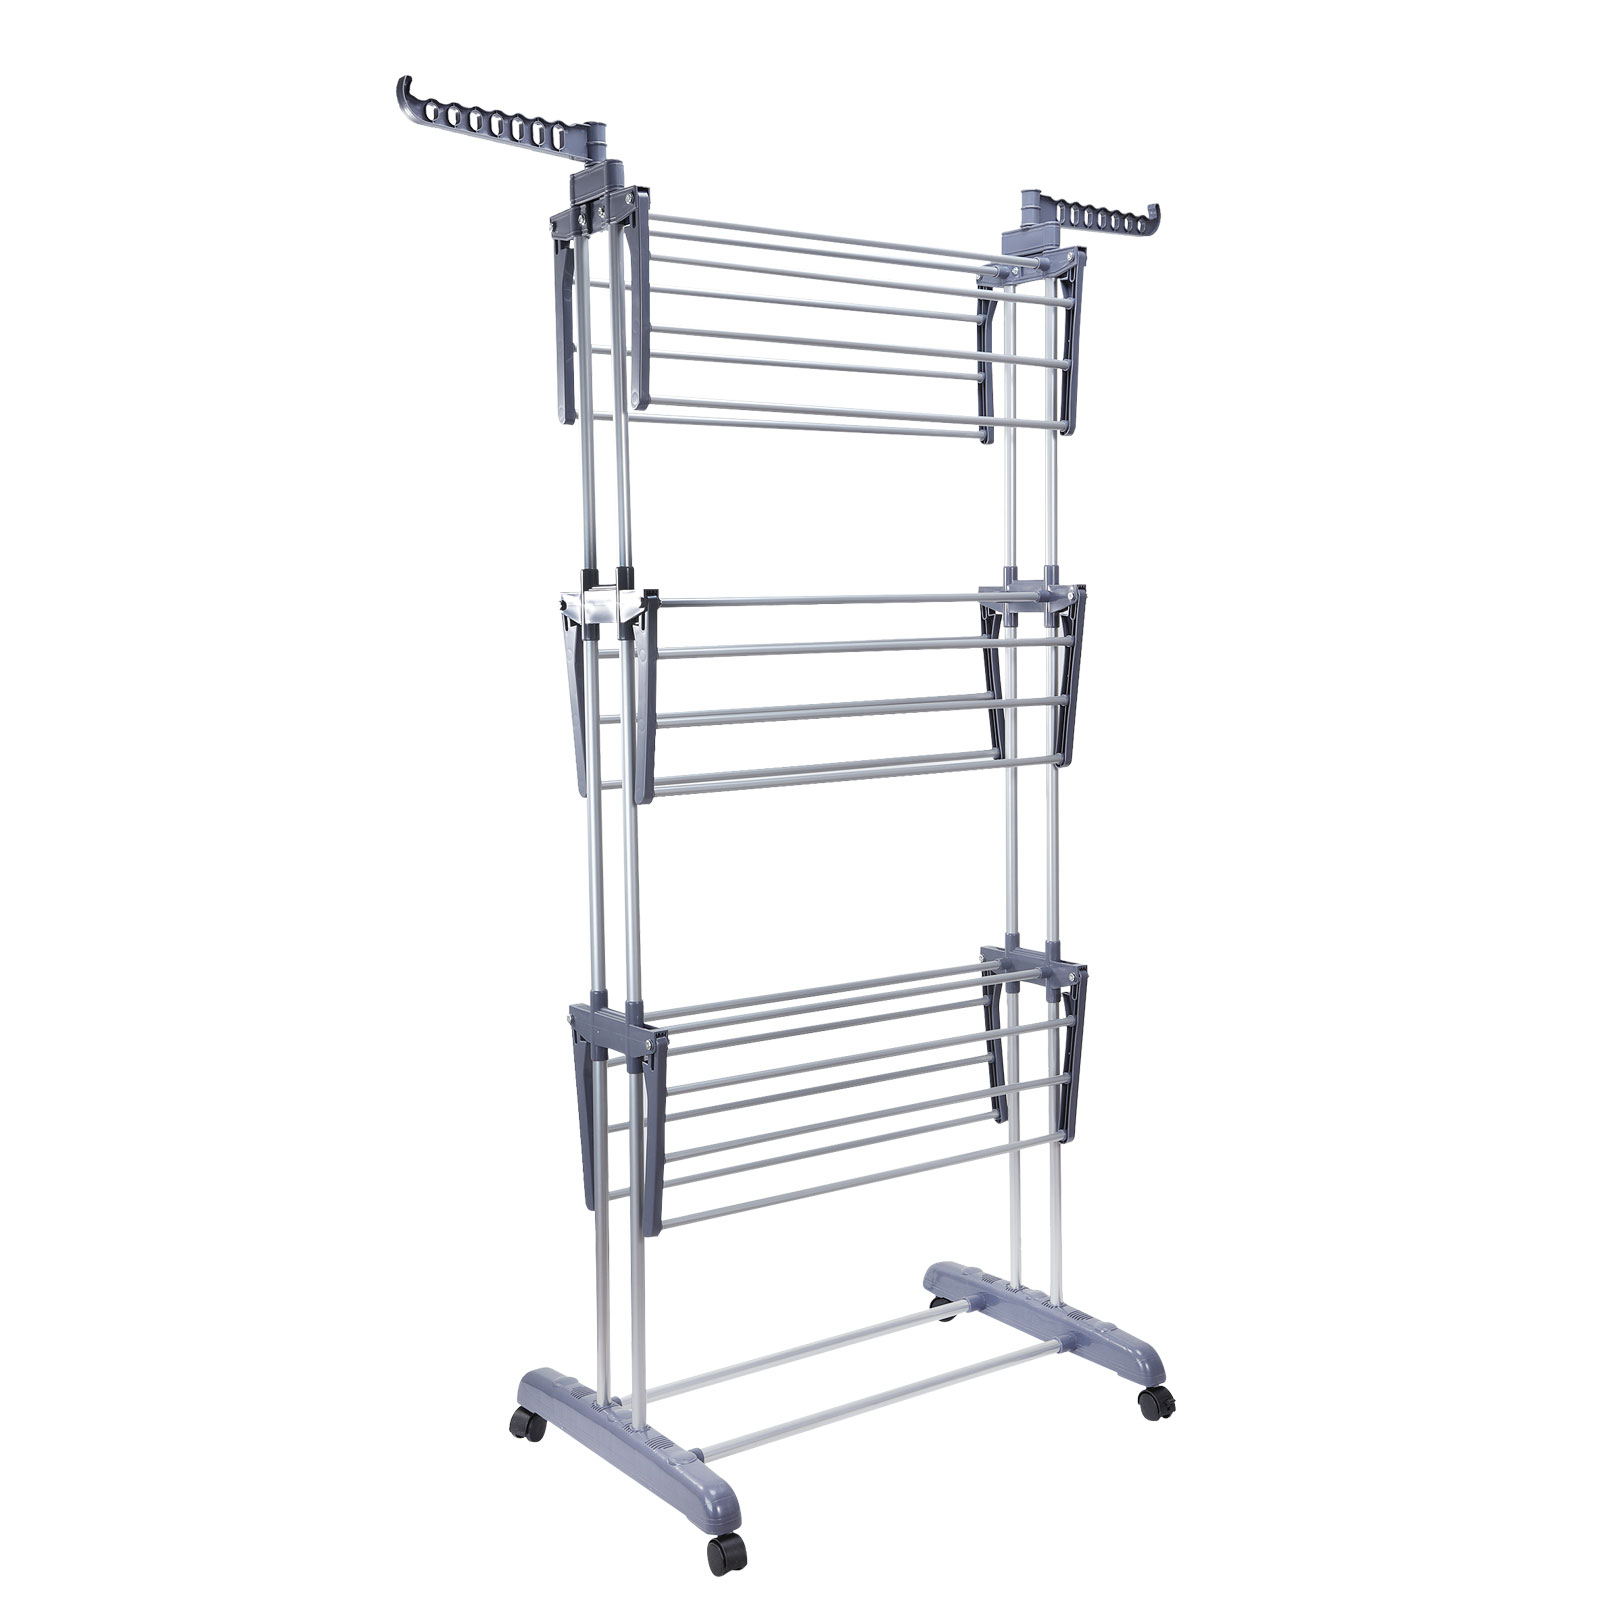 Clothes Dryer Rack ~ Foldable tier clothes airer laundry dryer rack indoor